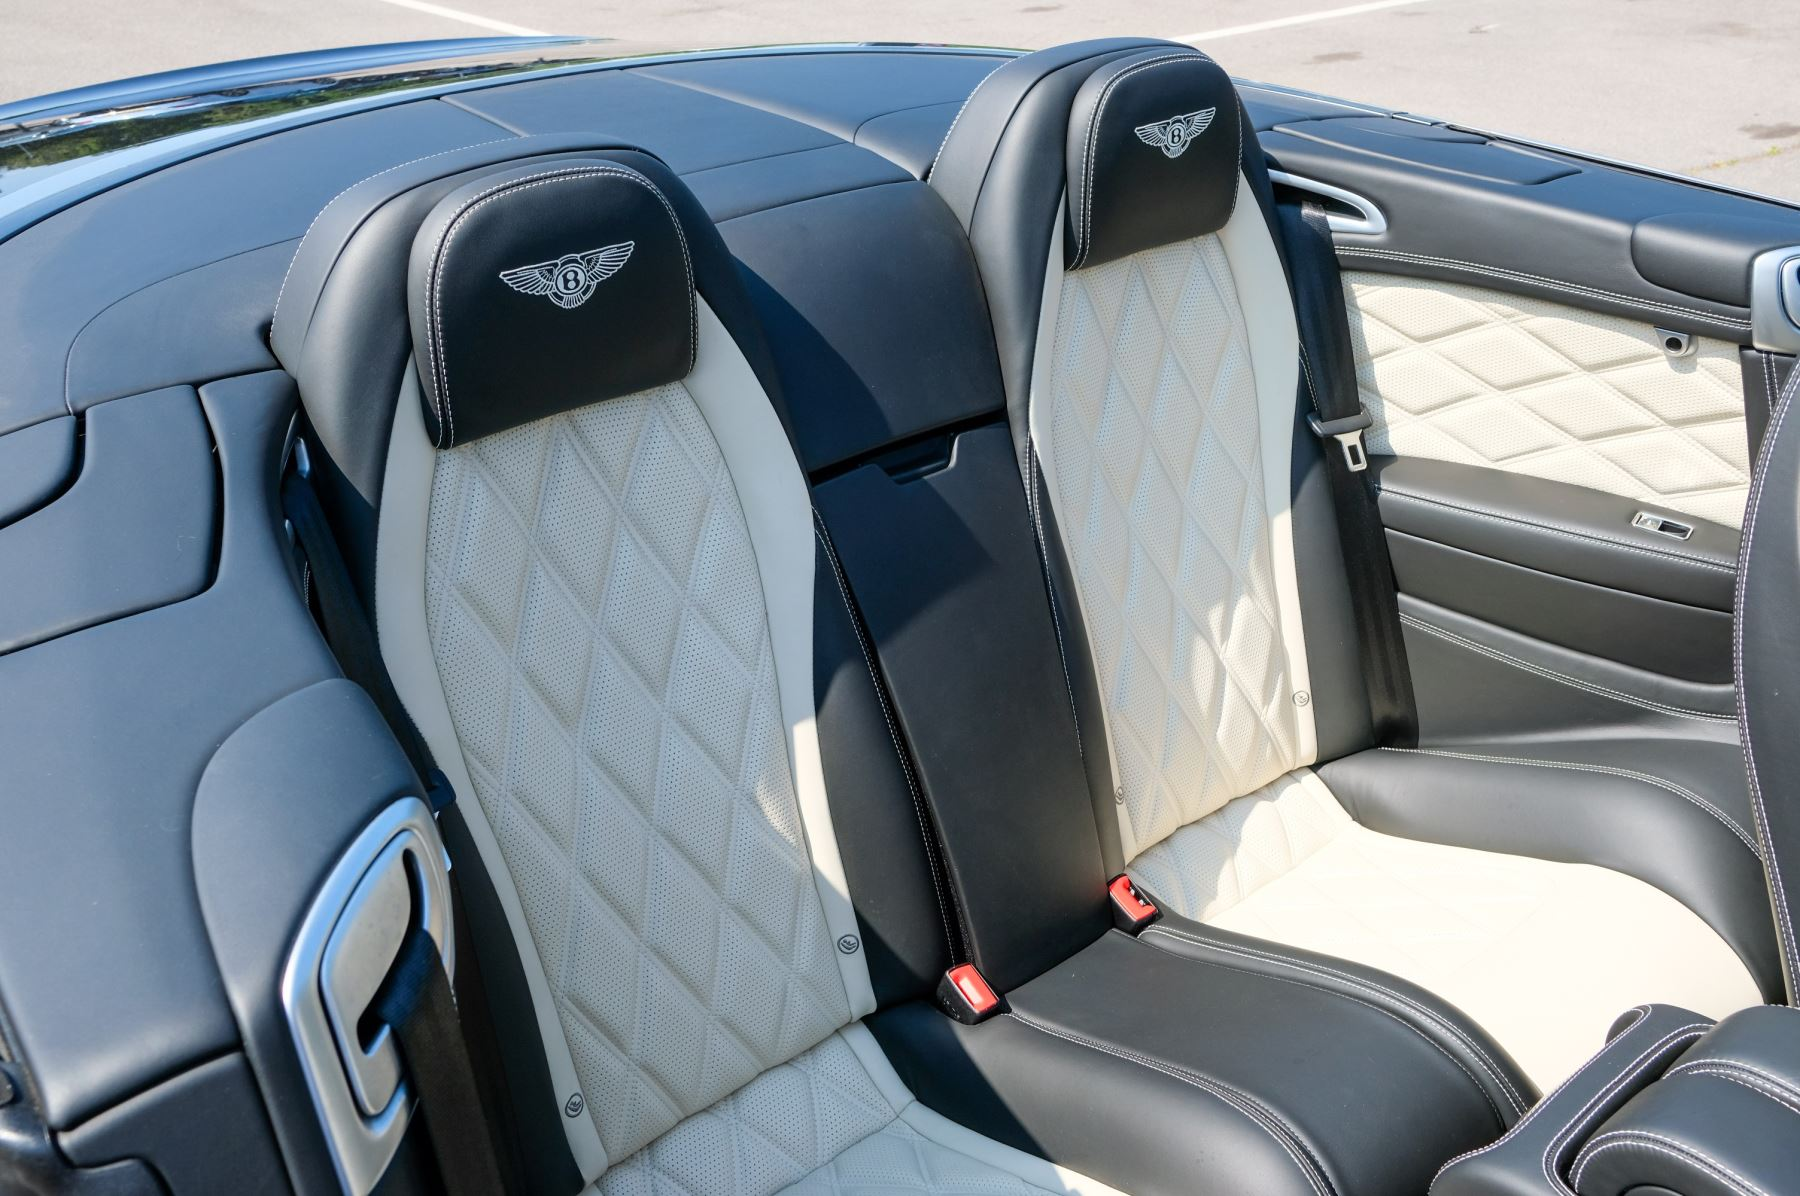 Bentley Continental GTC 4.0 V8 S - Mulliner Driving Specification image 12